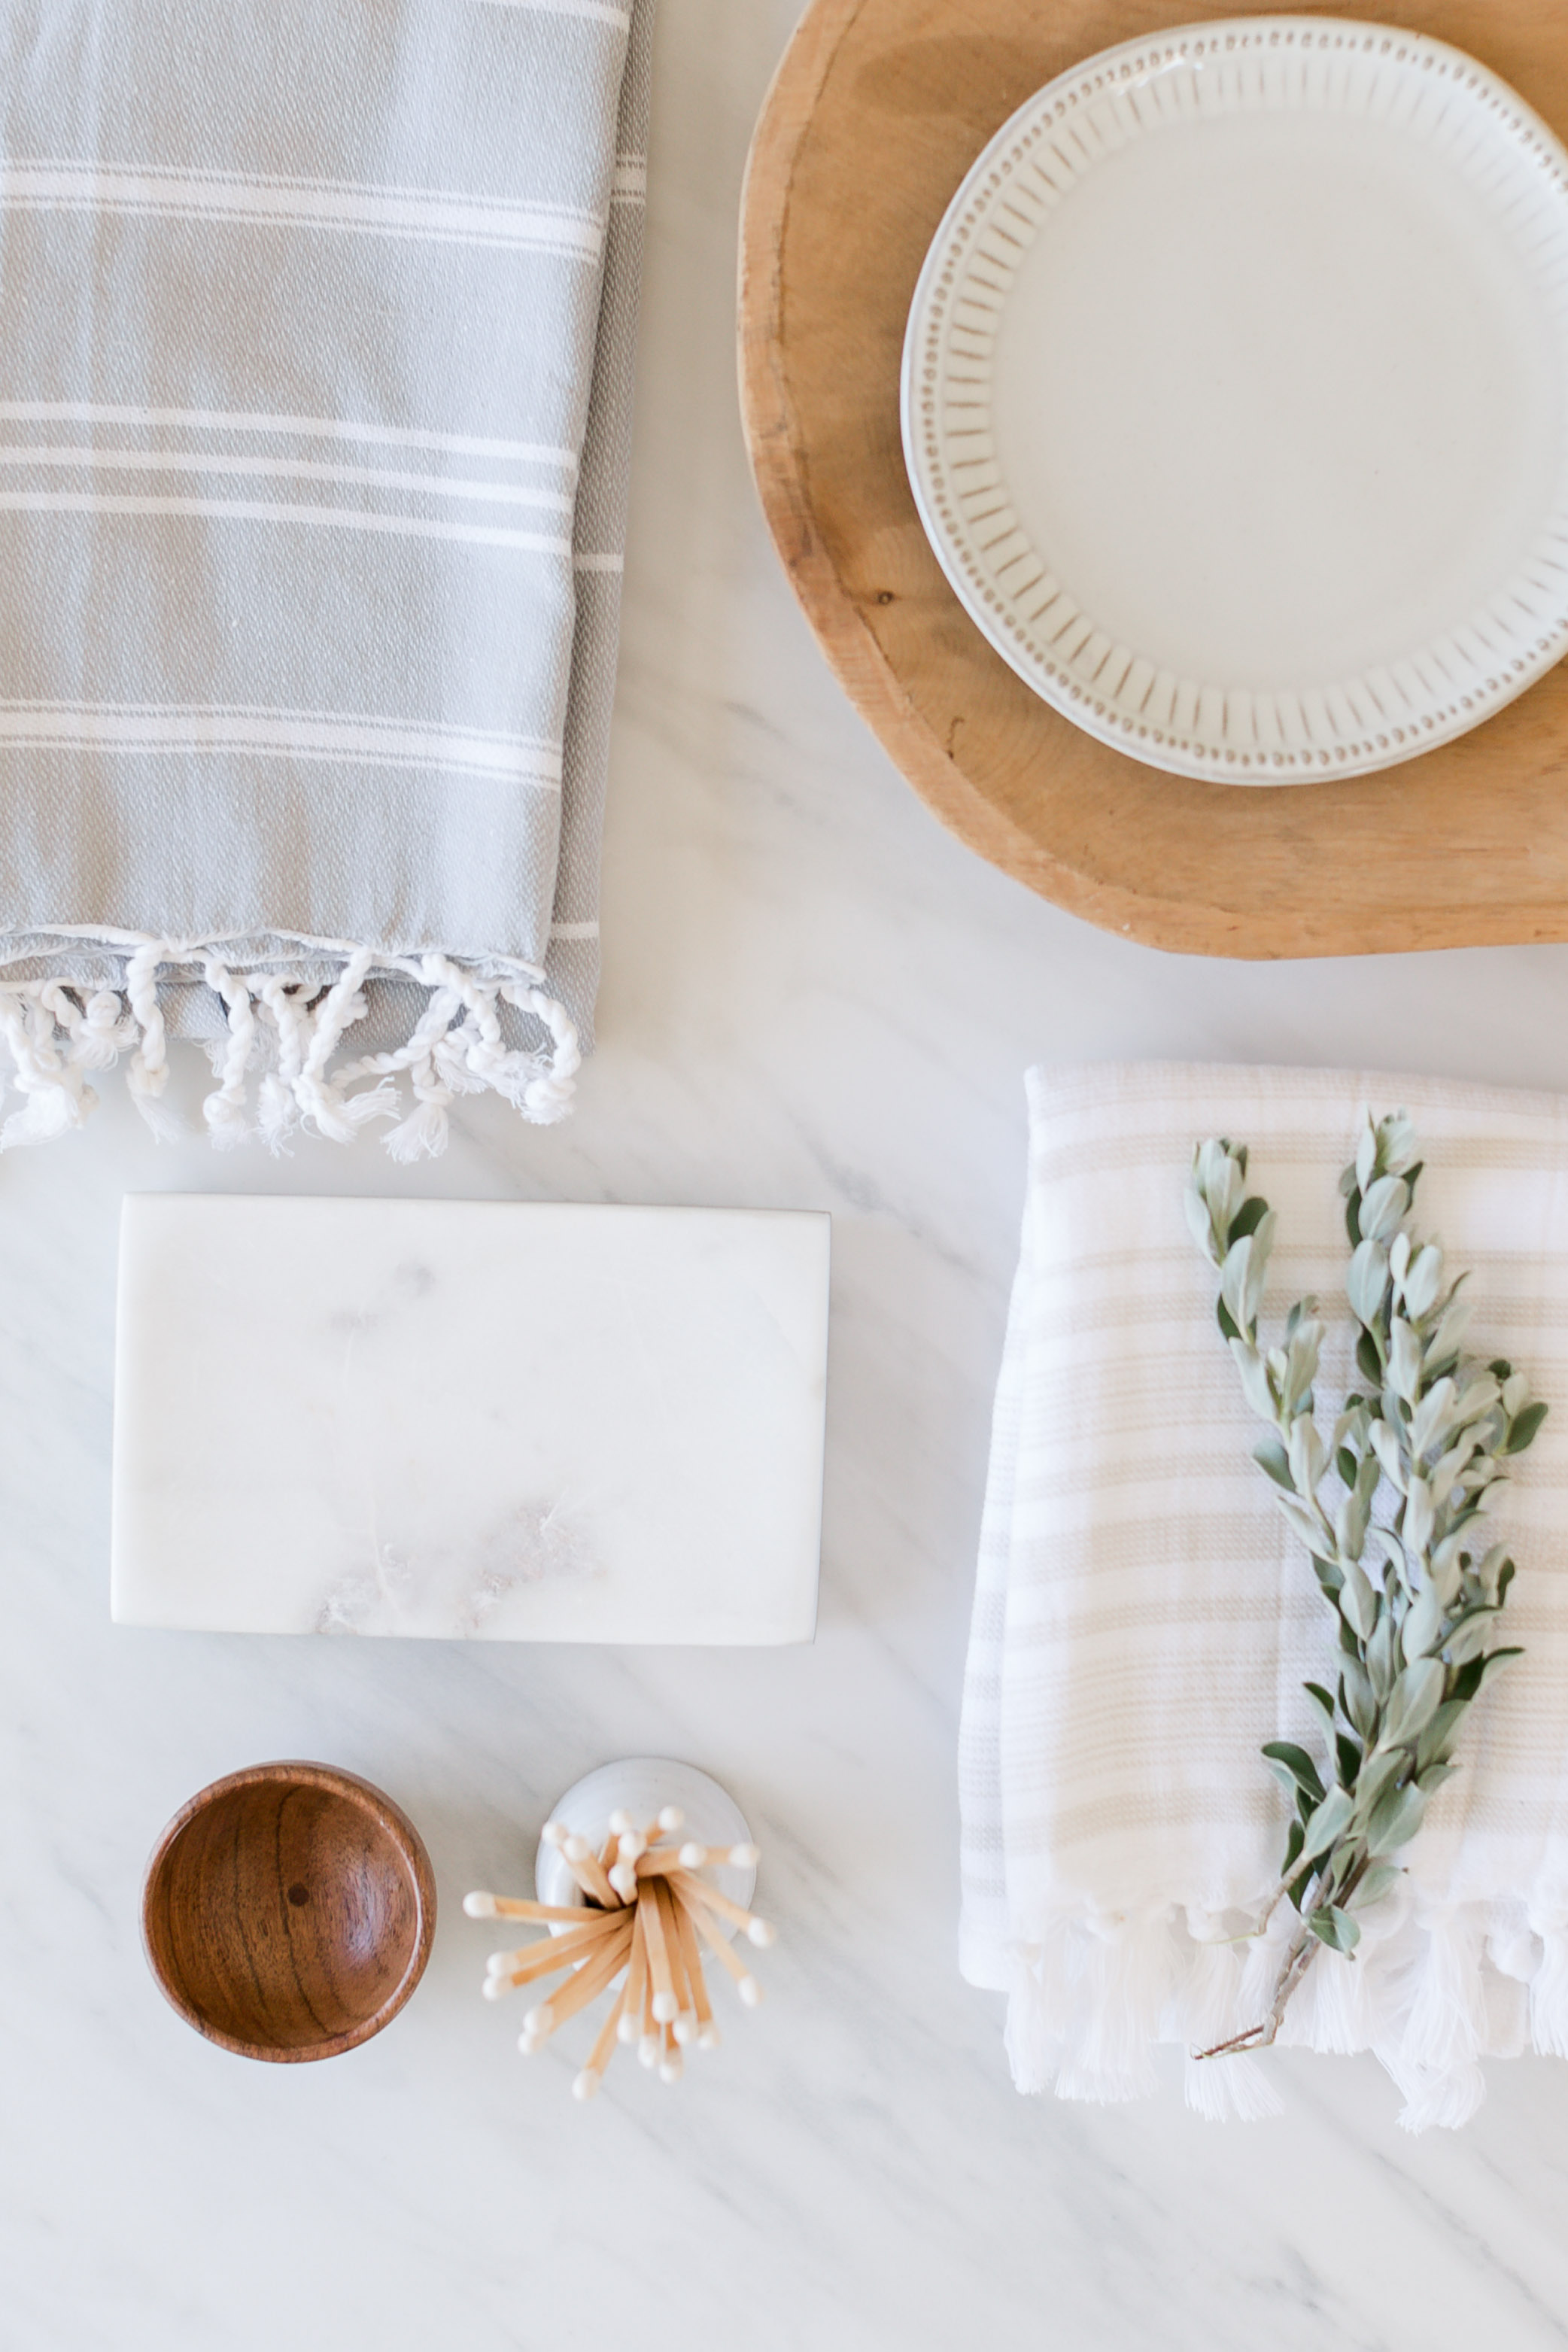 Best Tips on Finding Props for your Brand Photoshoot - Photoshoot Flat Lay Prop Tips